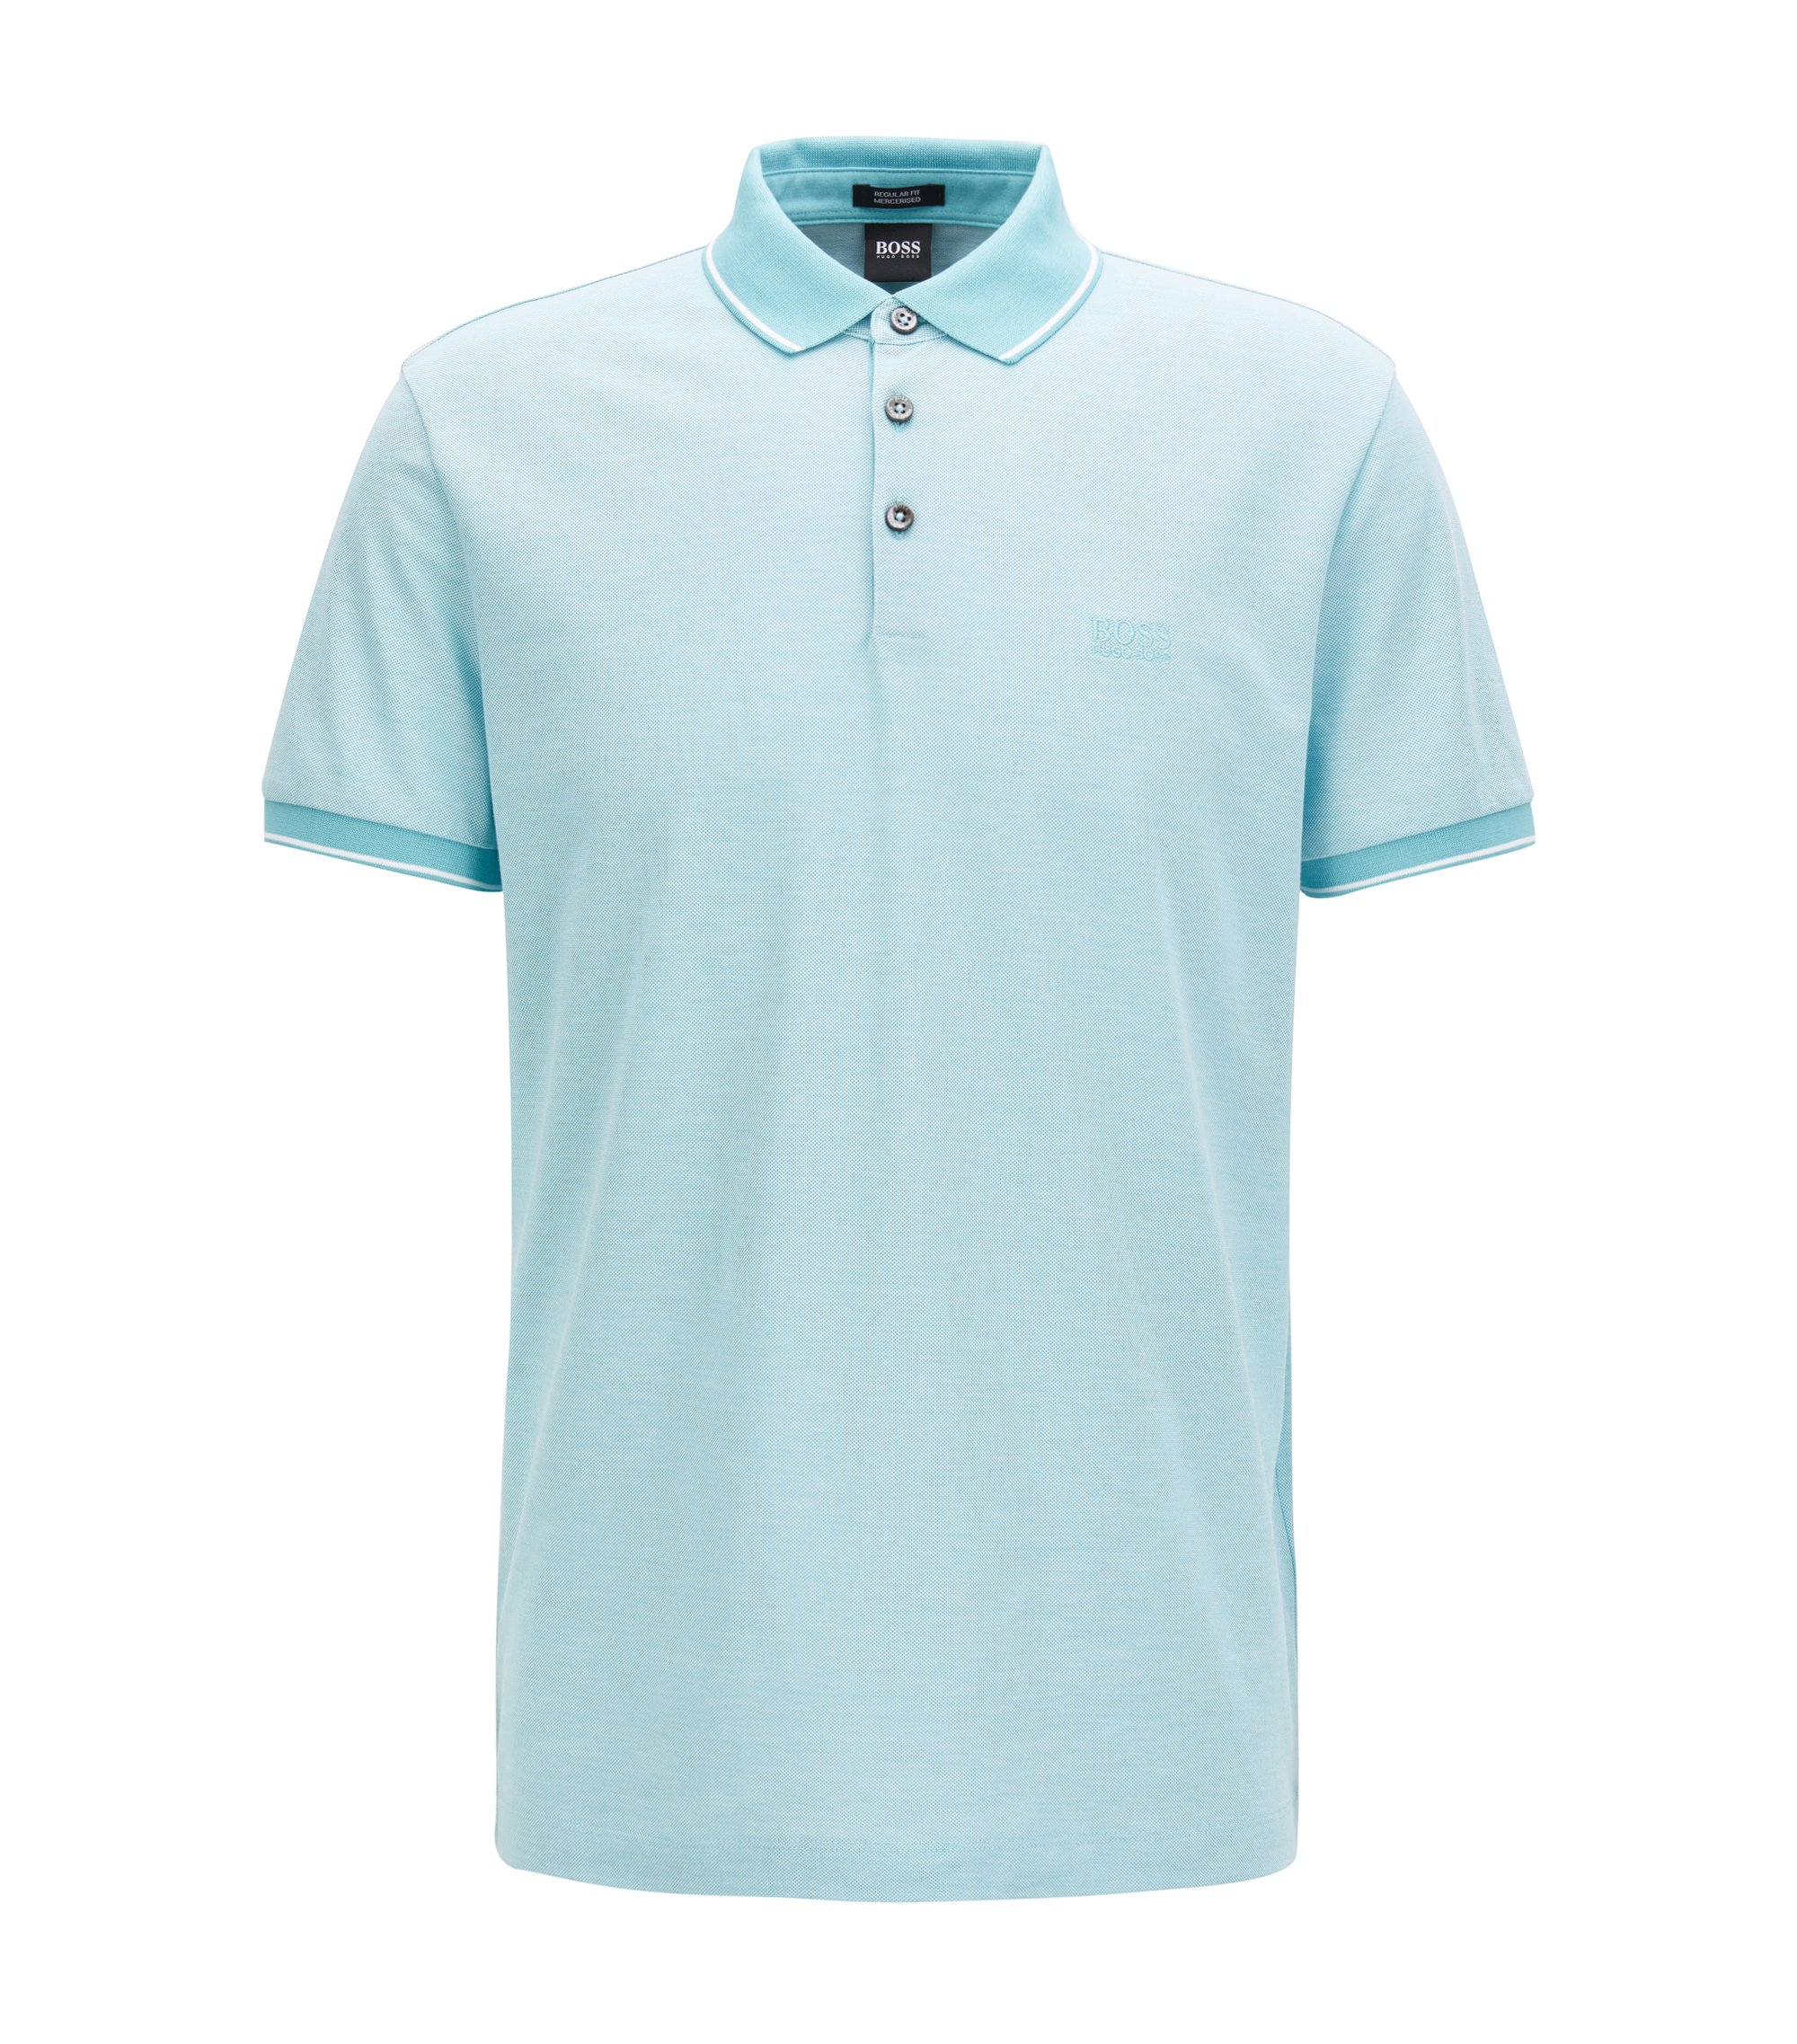 Regular-fit mercerised cotton piqué polo shirt, Light Blue